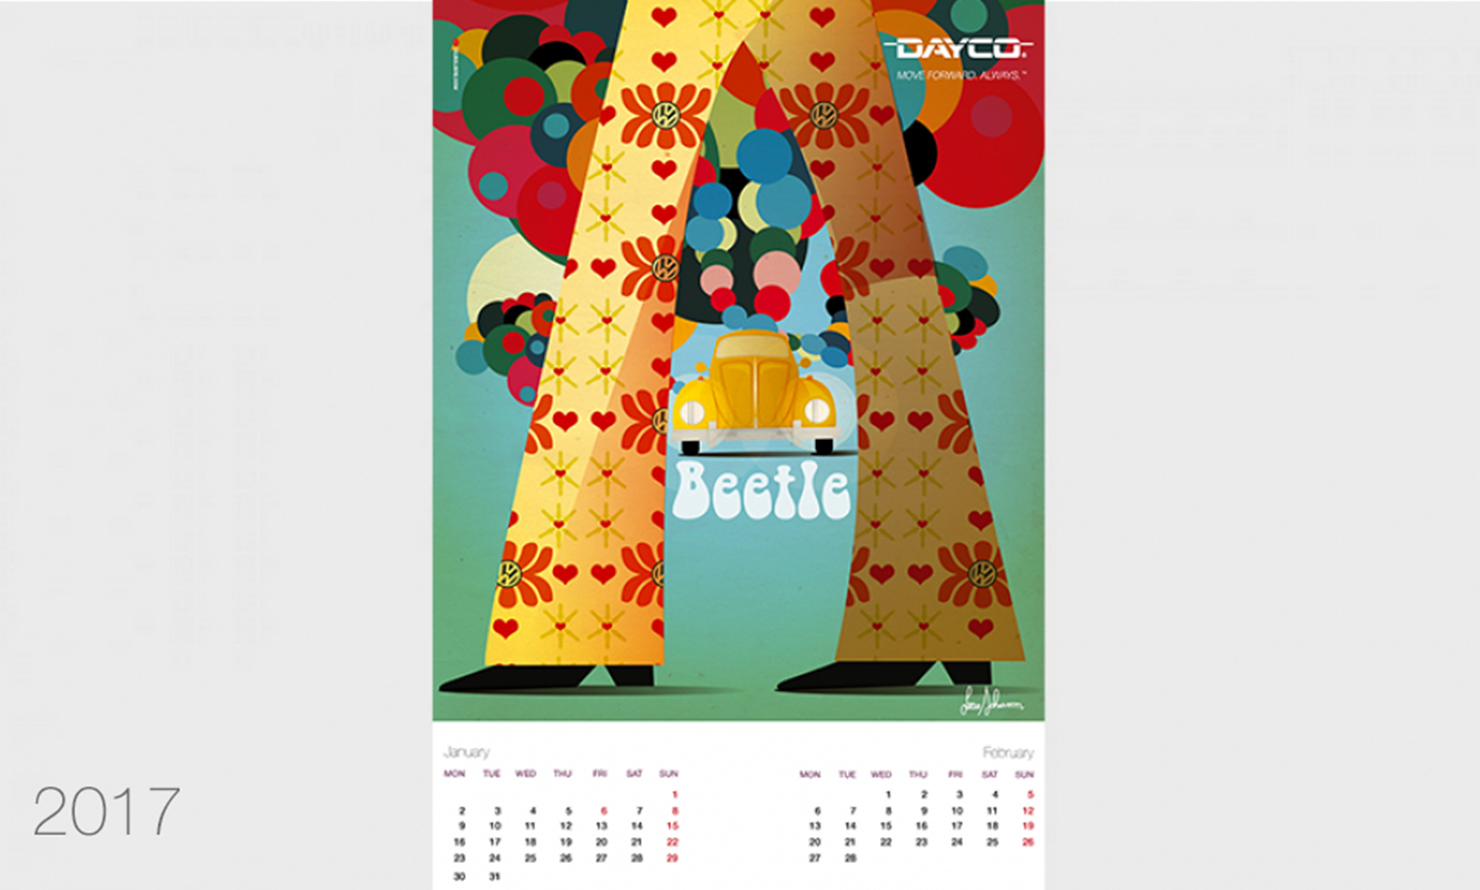 https://kubelibre.com/uploads/Slider-work-tutti-clienti/dayco-calendario-2017-1.jpg